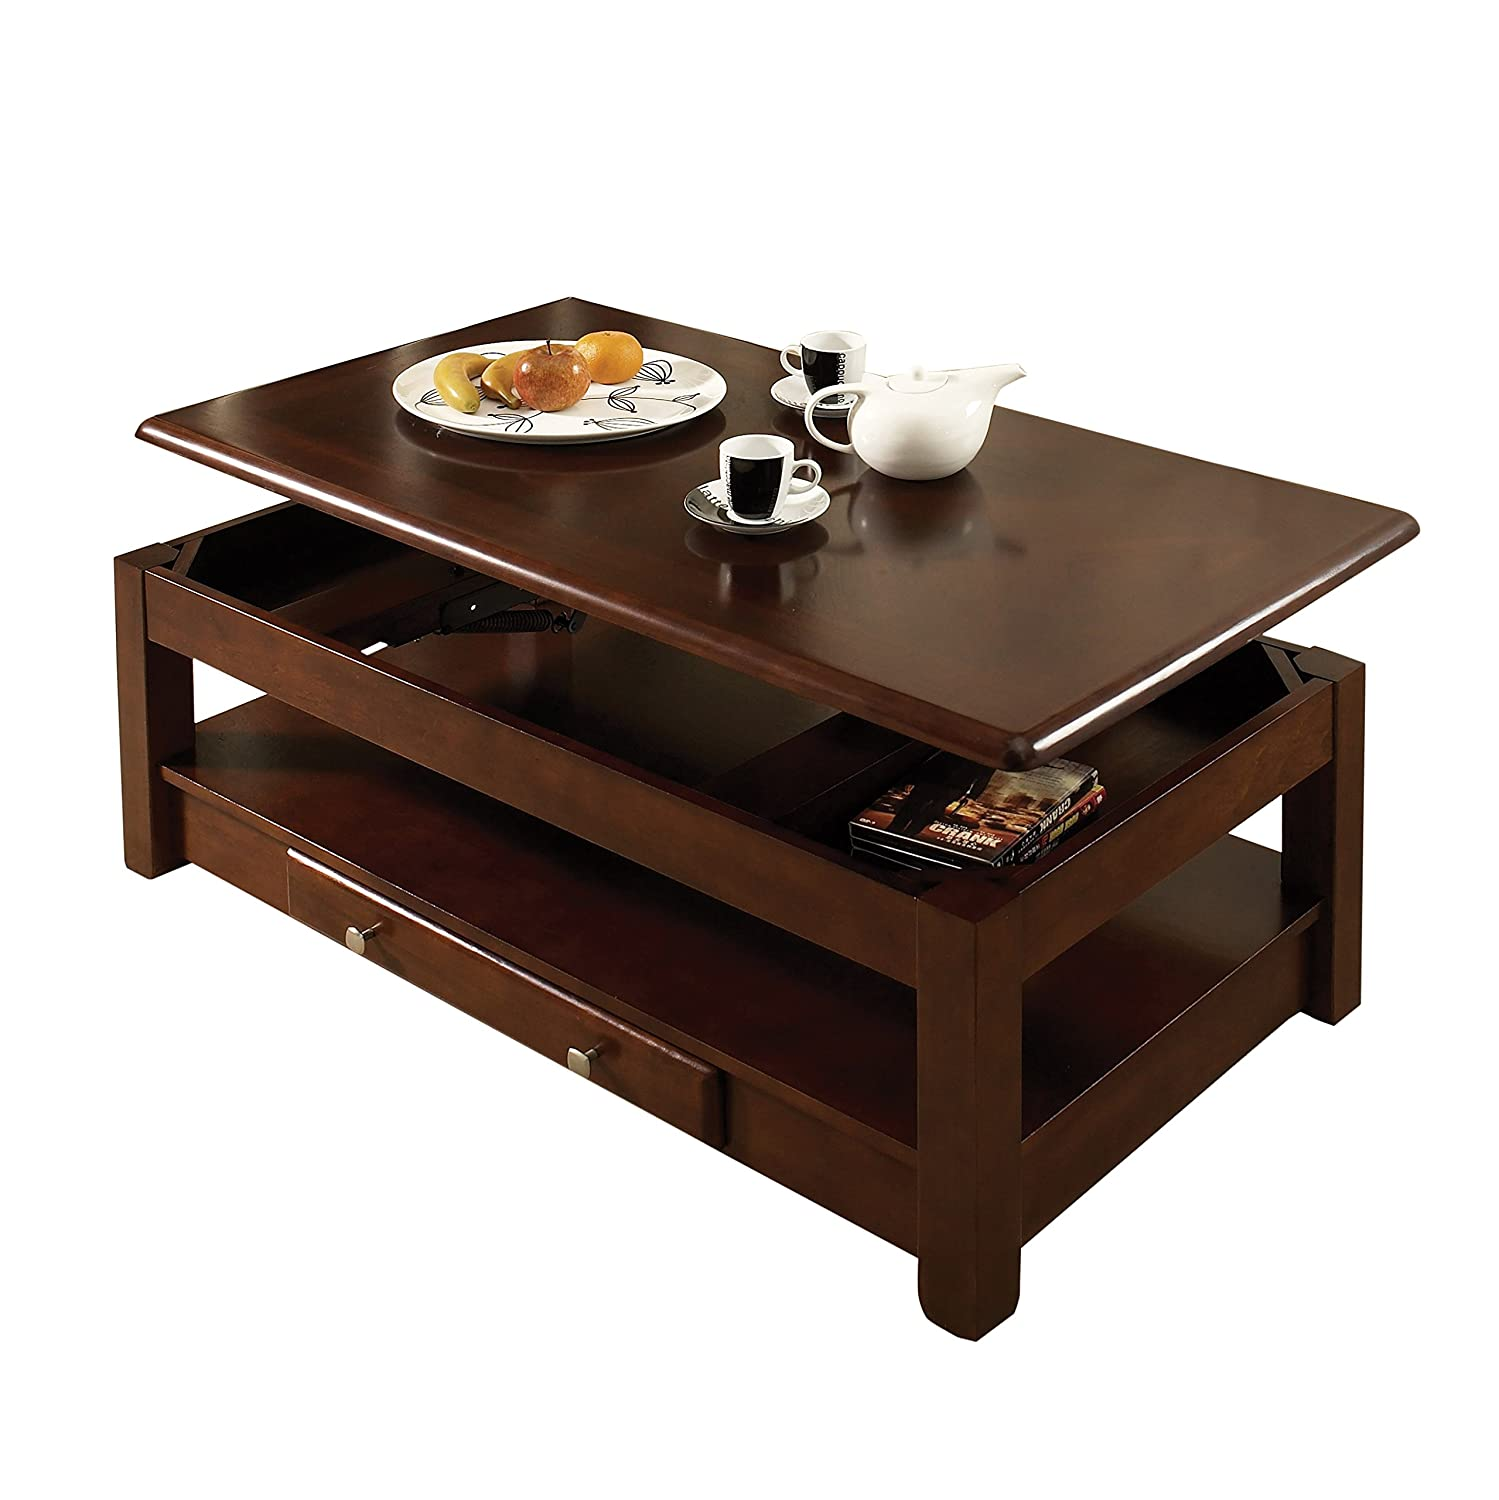 12 Best Convertible Coffee Table To Dining Transforming Tables Bestlyy 2020 Products Curated By Quality